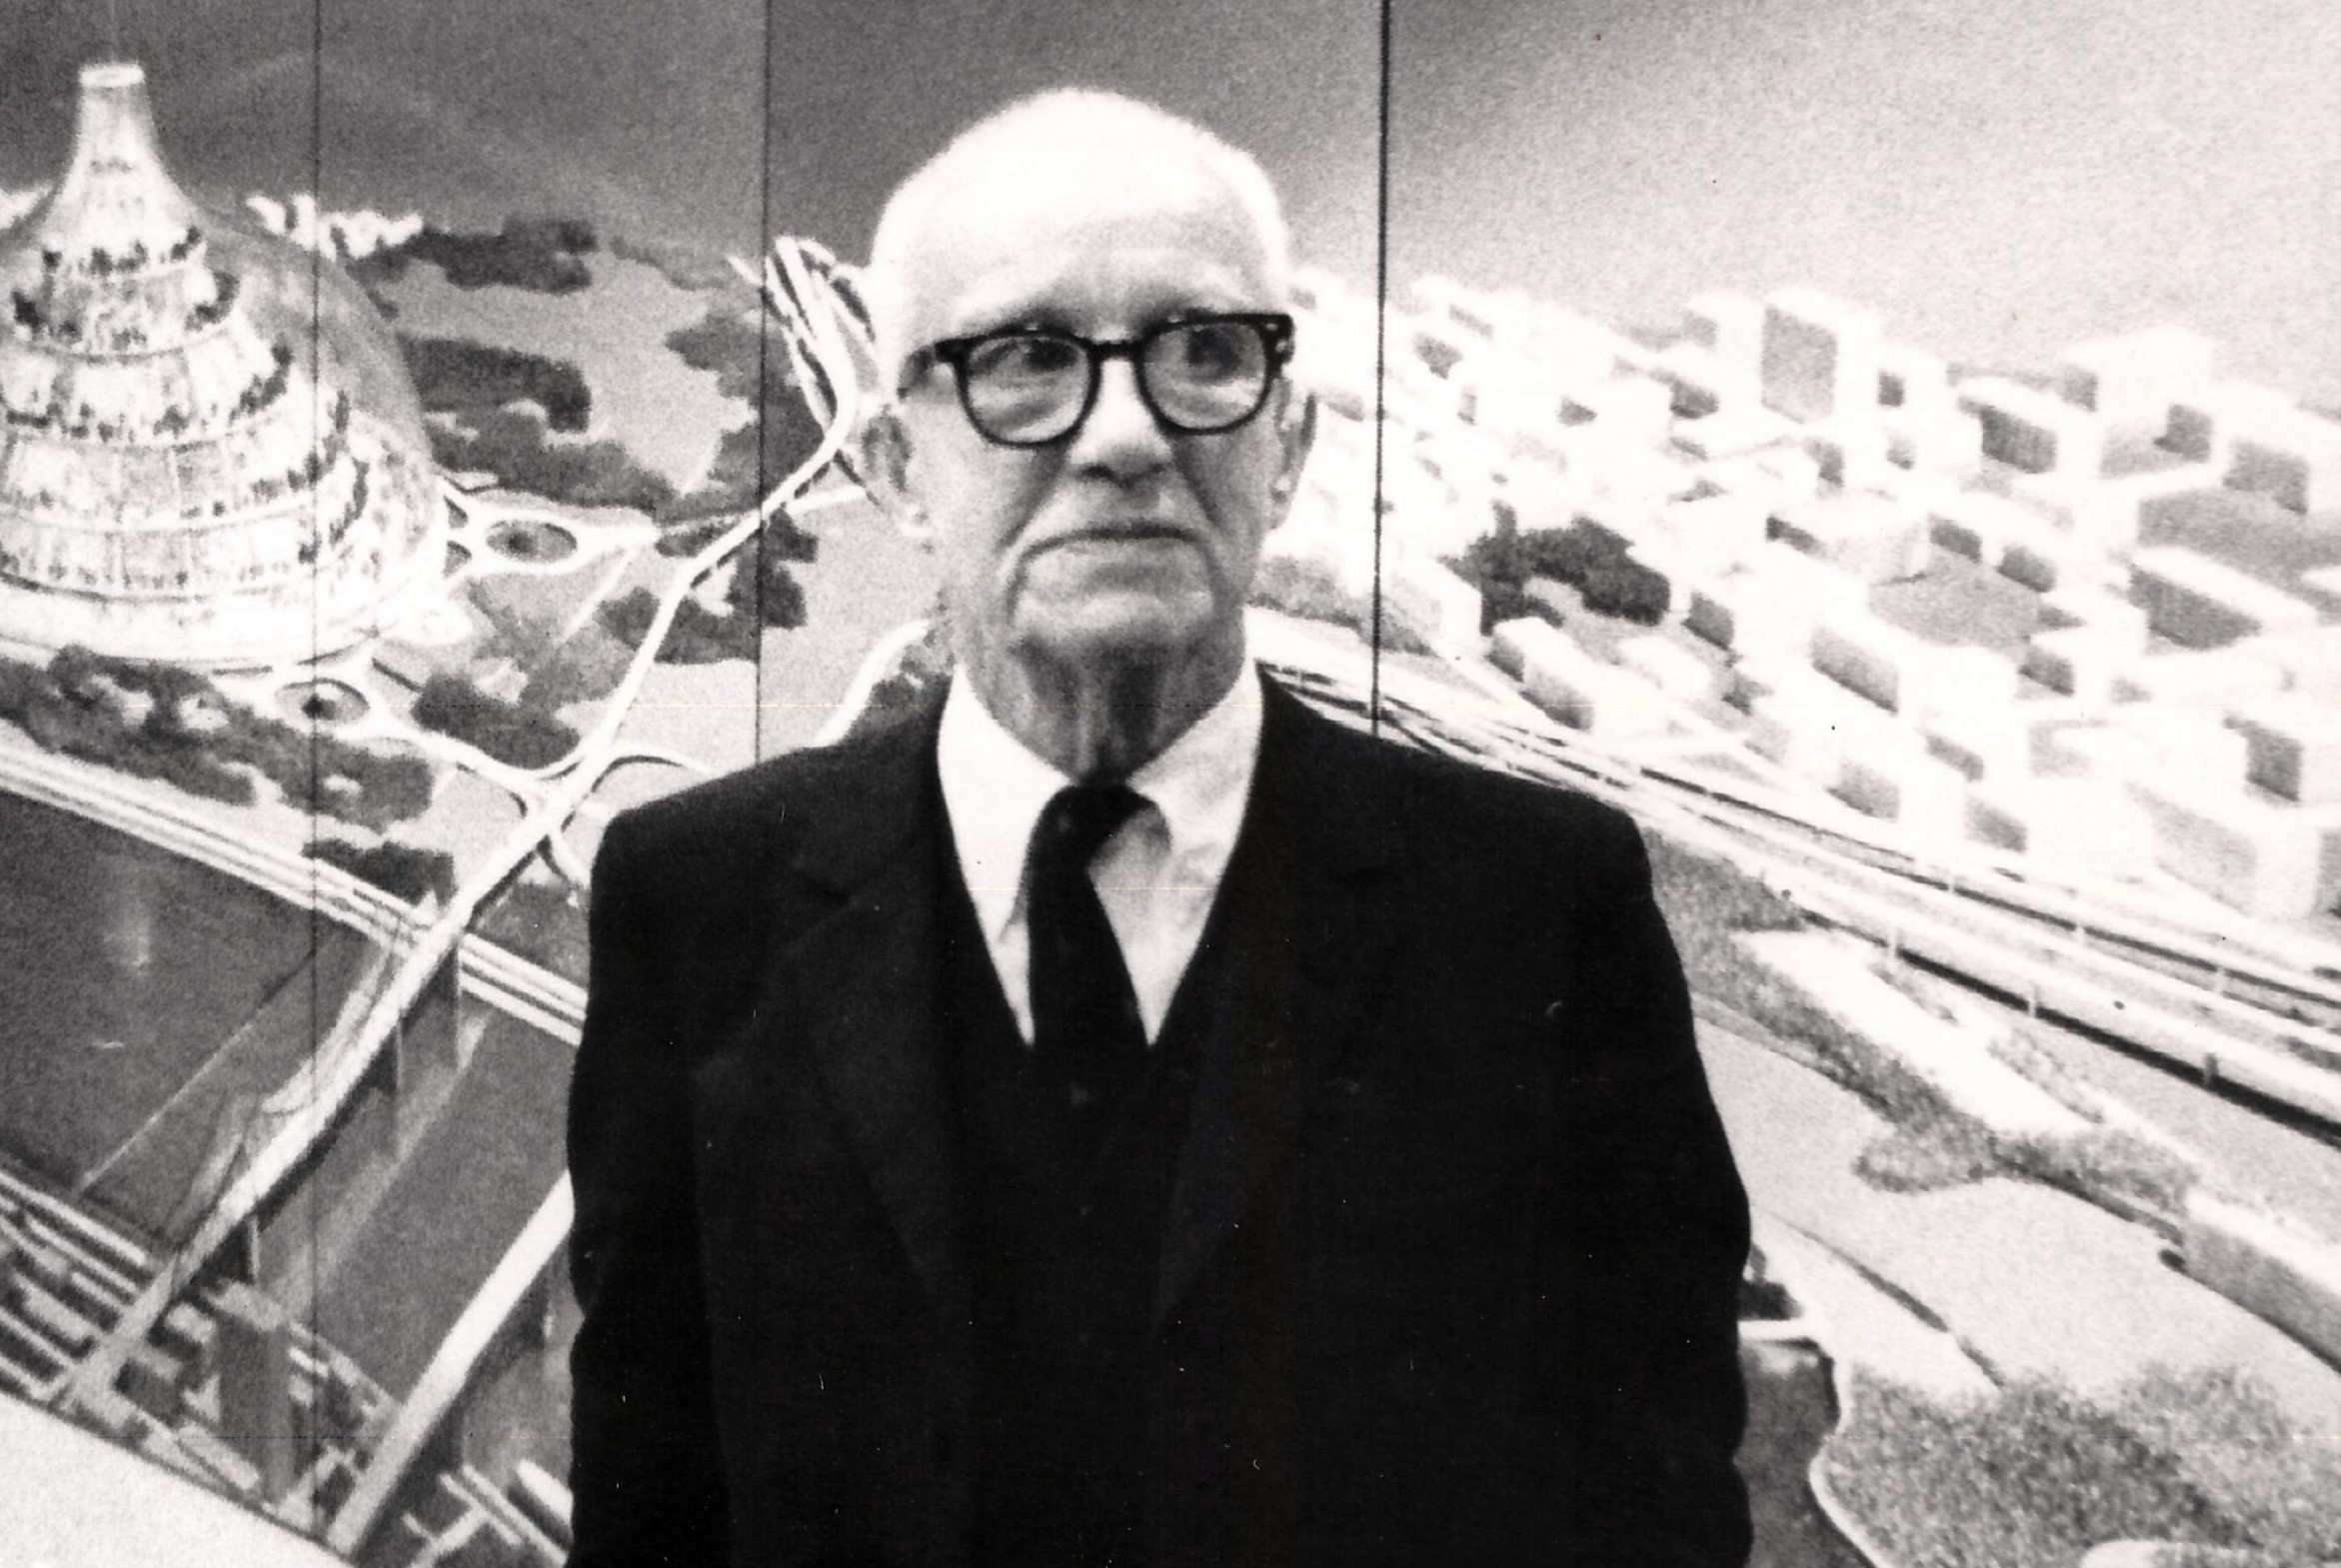 R. Buckminster Fuller stands in front of a depiction of his domed city design at its first public showing at a community meeting in East St. Louis, Illinois. Date  1971